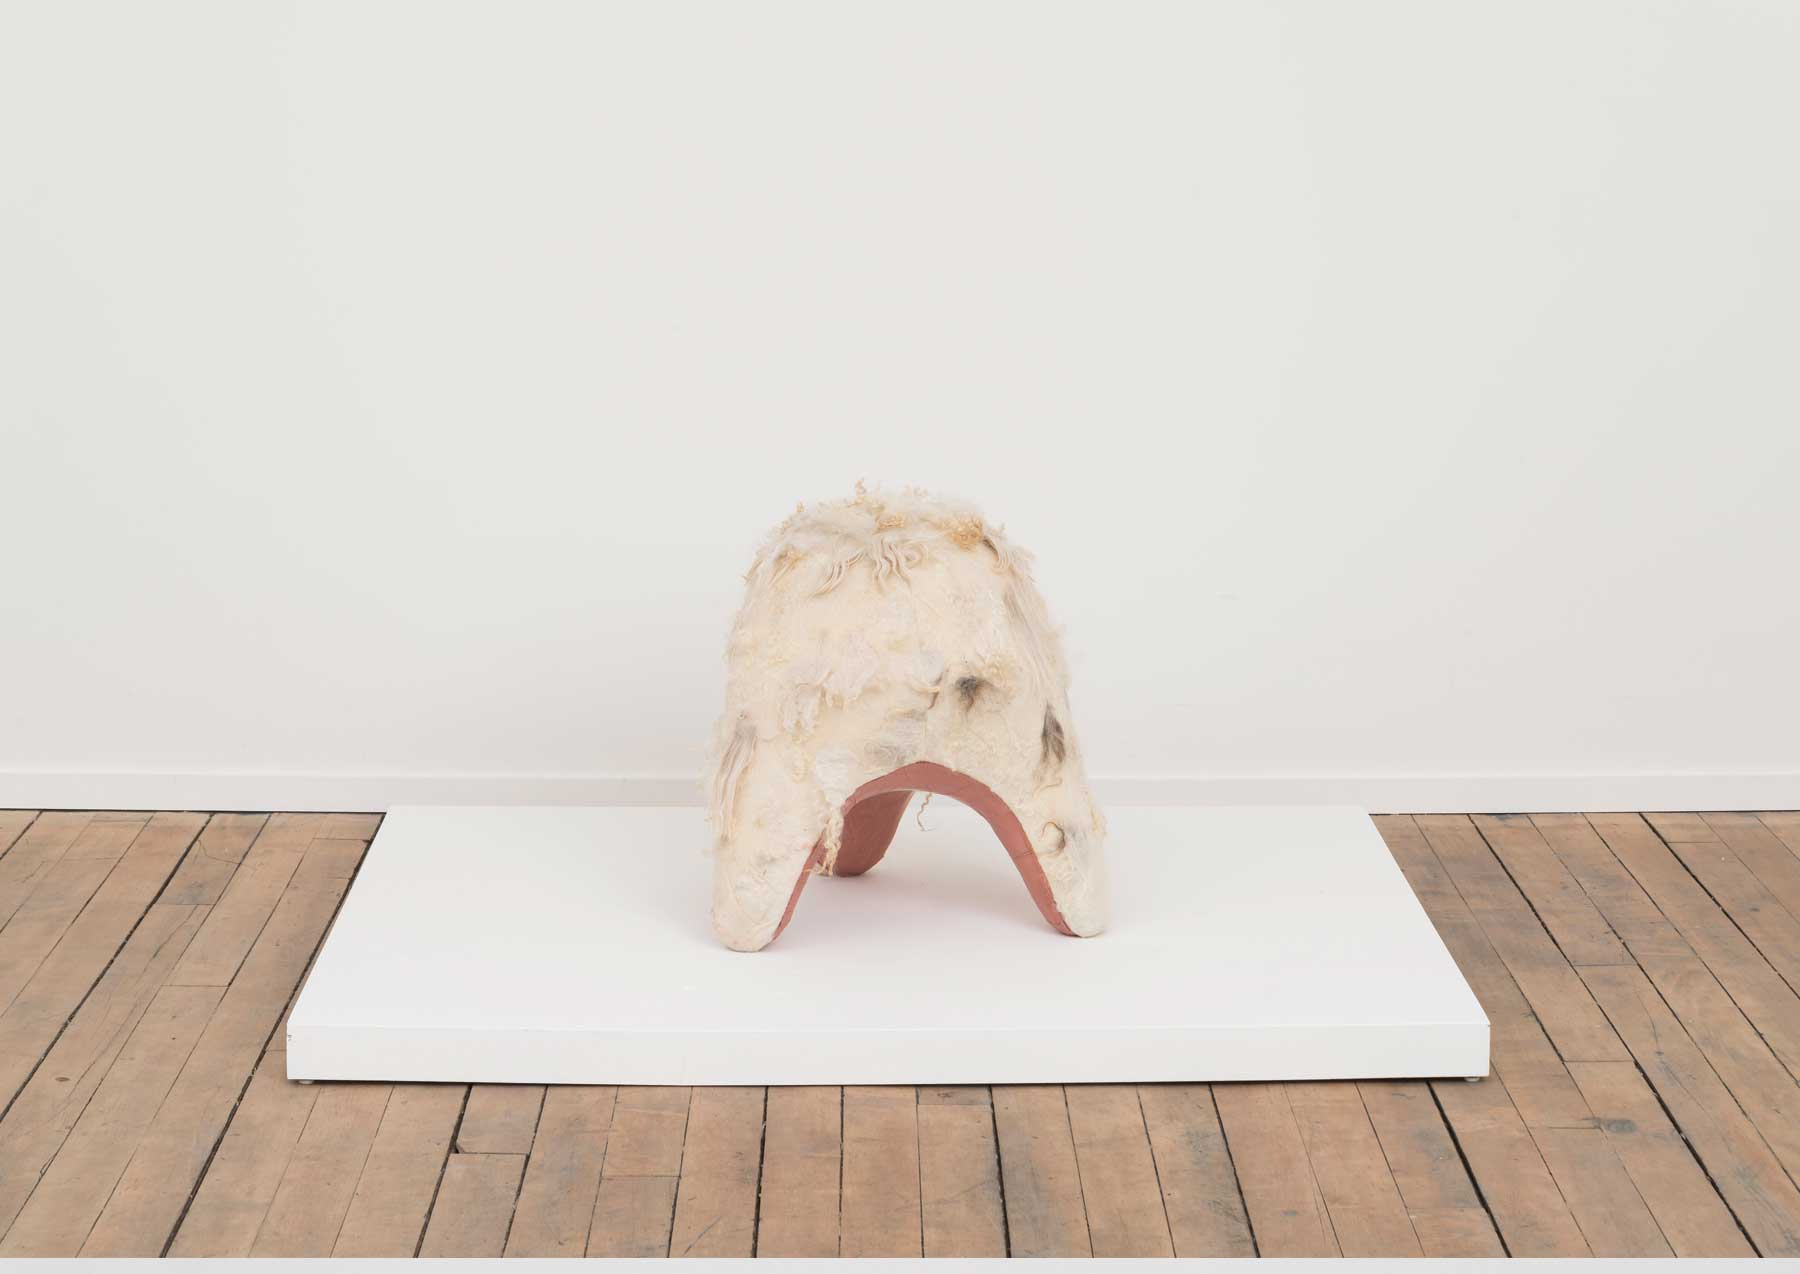 Swaddle Stool (Underbelly) , 2015  Self-dryingterra-cotta, canvas, wool  19 x 19x 20inches  Image courtesy of Volume Gallery, Chicago, IL